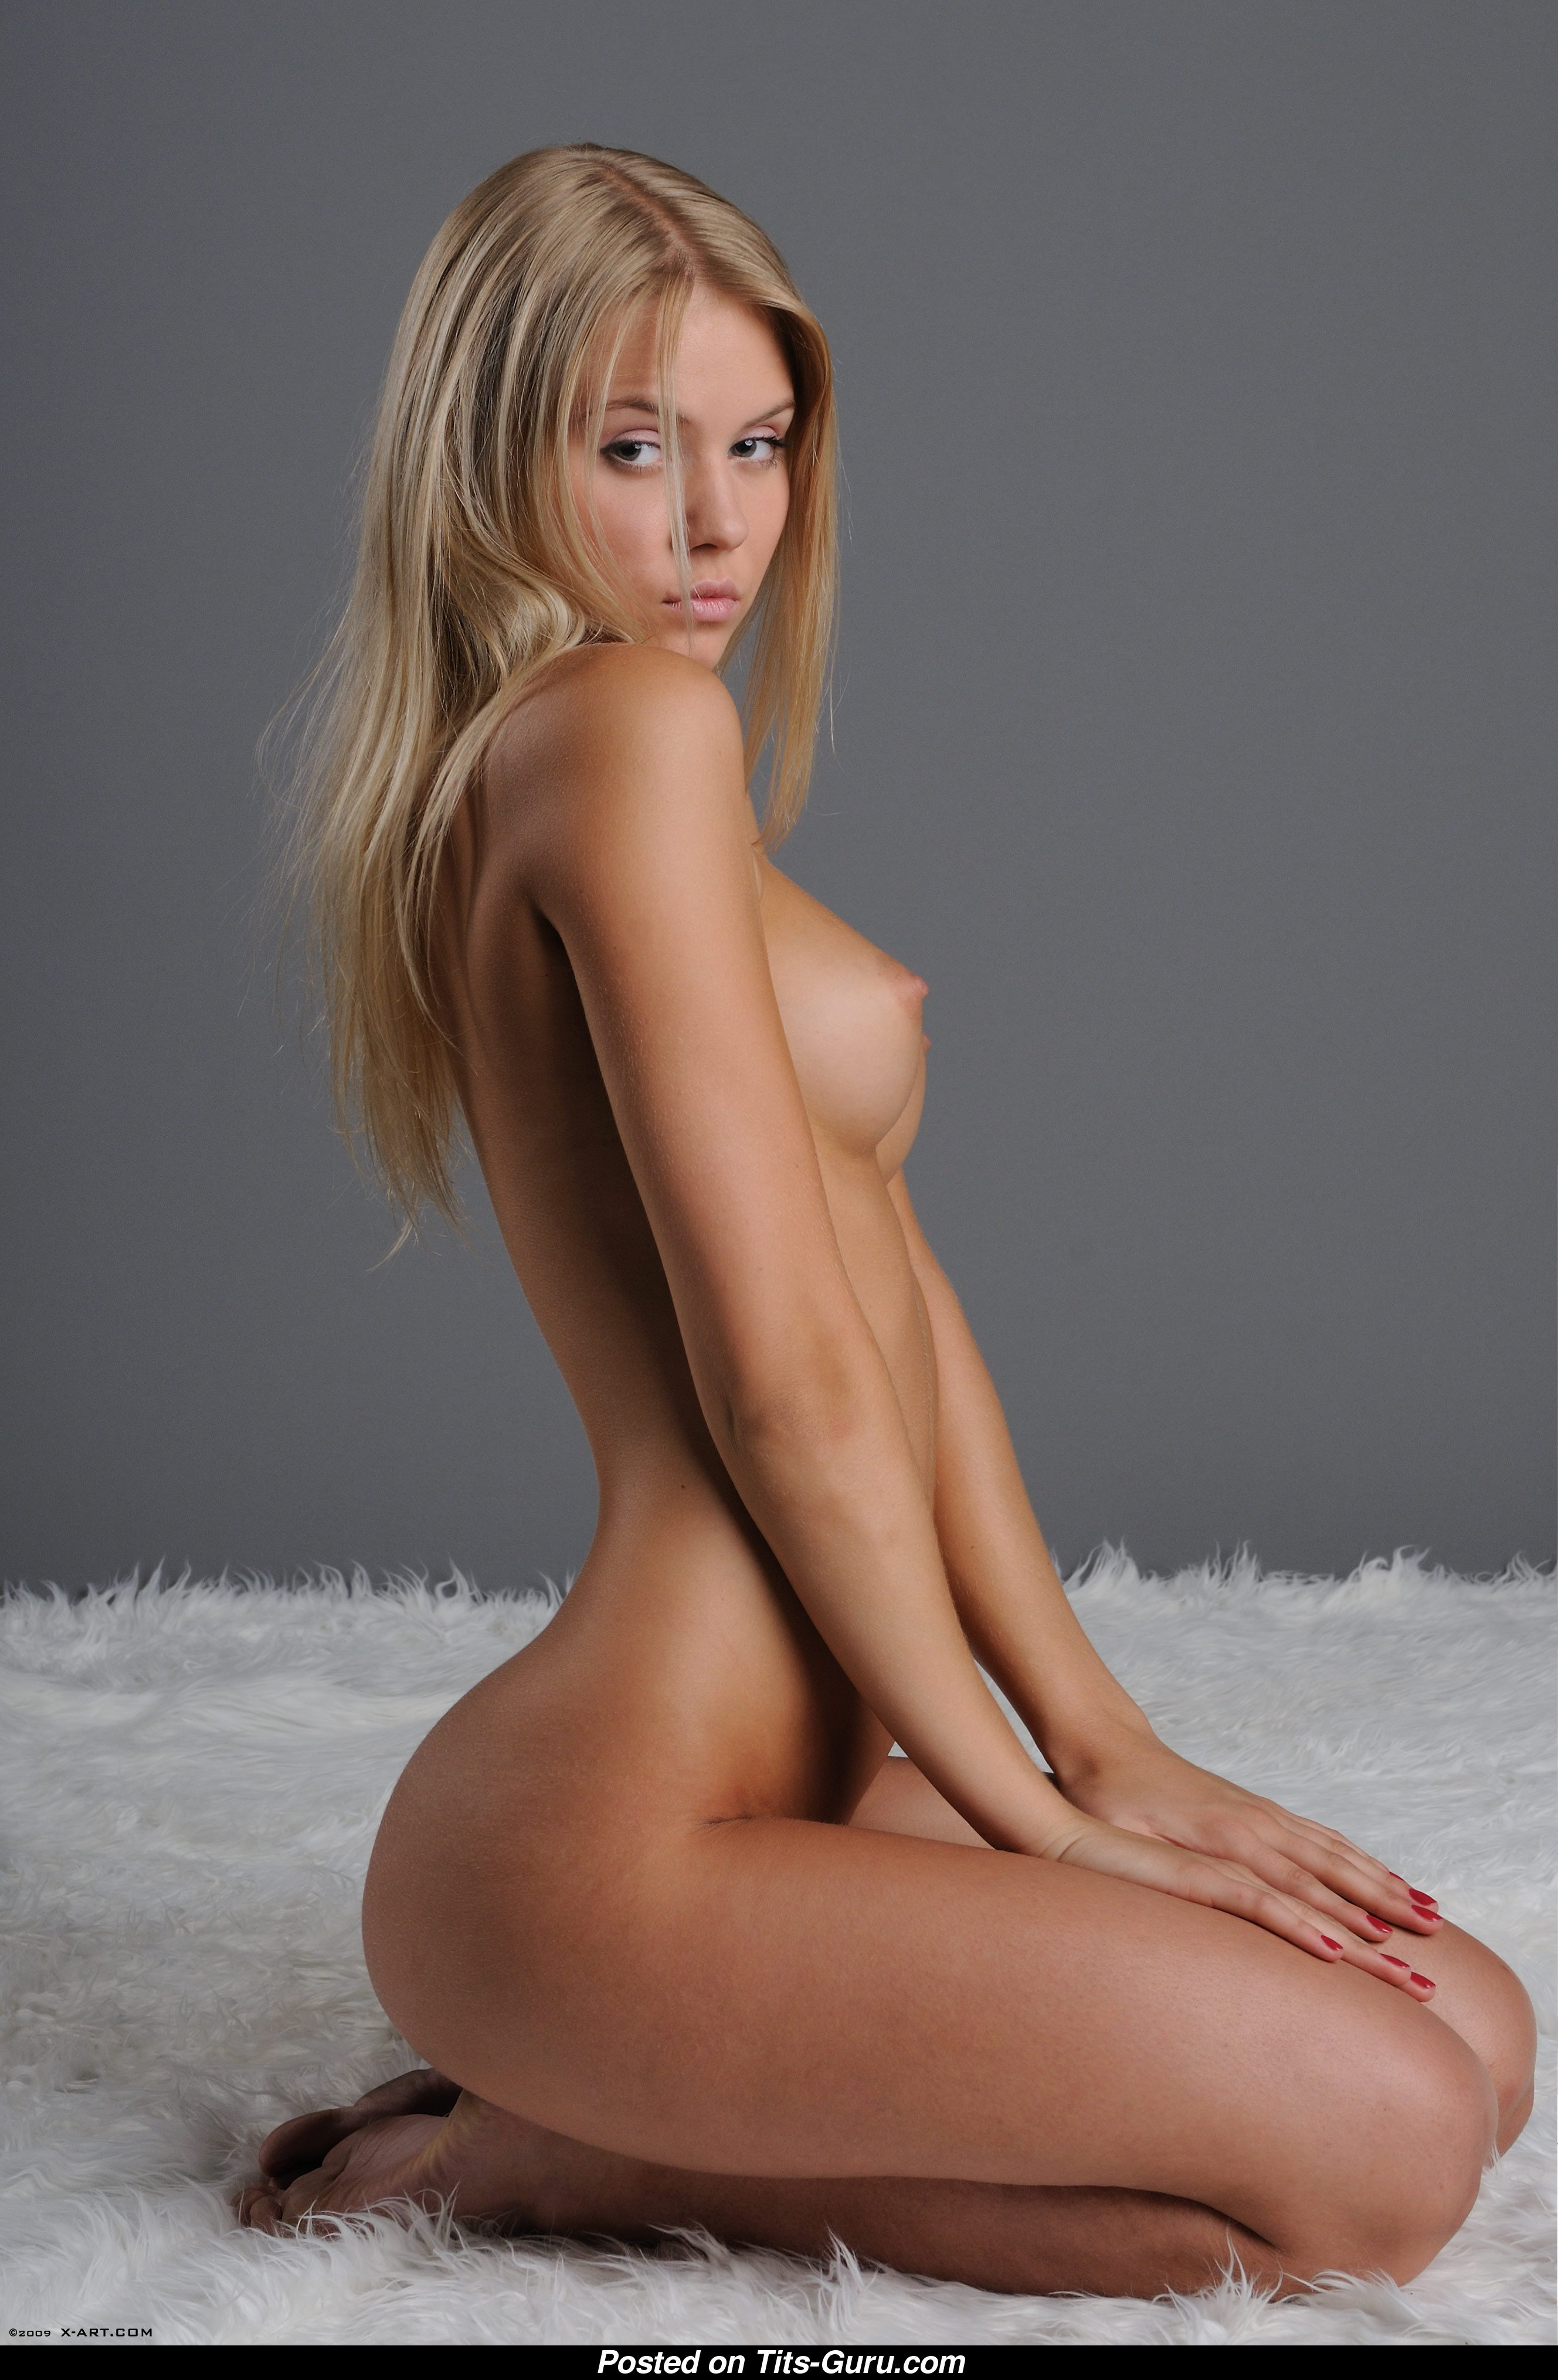 Beautiful naked blonde girl on bed